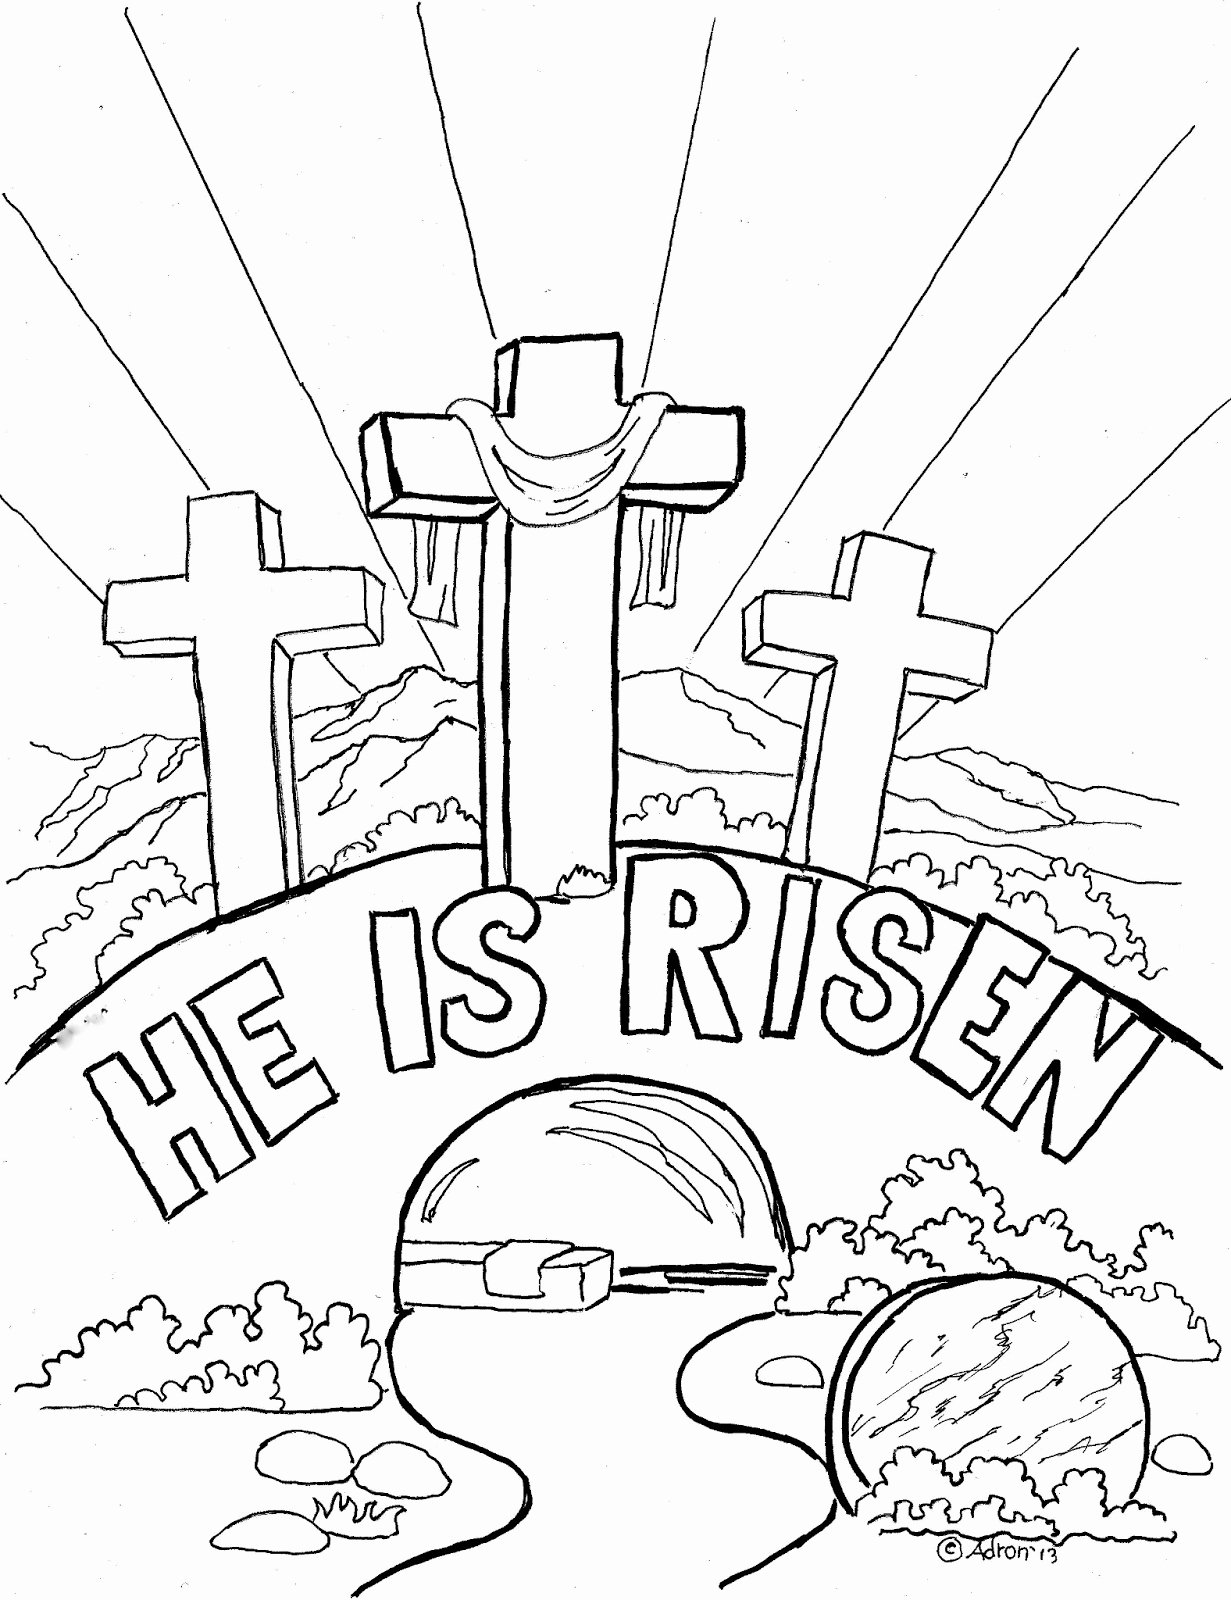 Christian Easter Worksheets for Preschoolers Ideas Coloring Book Free Christianng Pages for Preschoolers